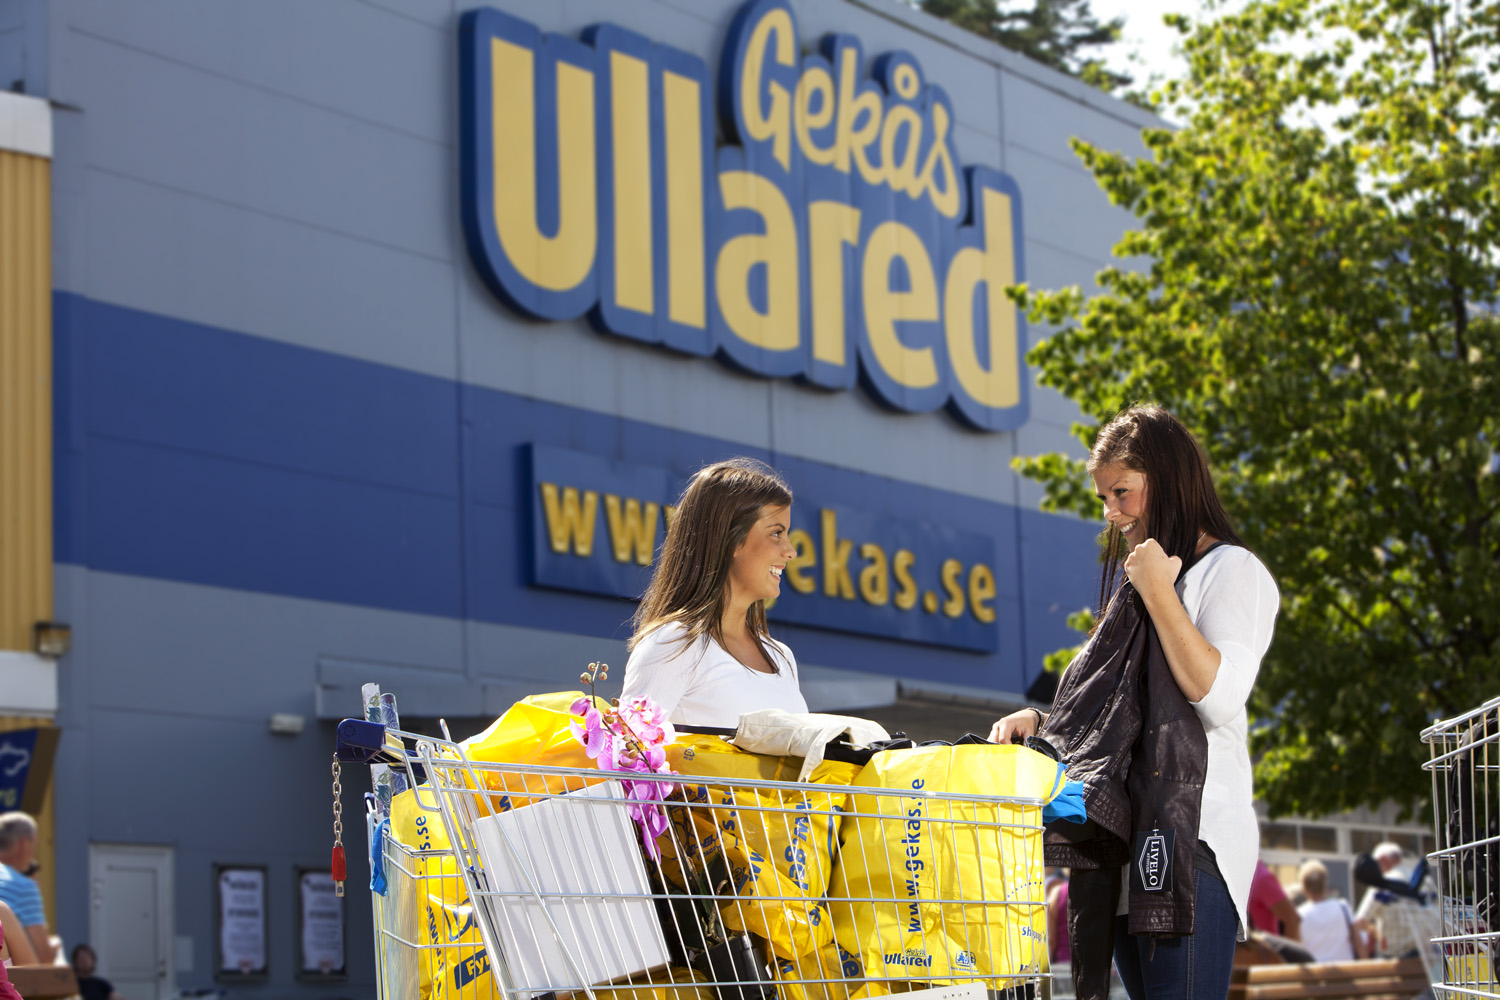 Shoppingresor till Ullared